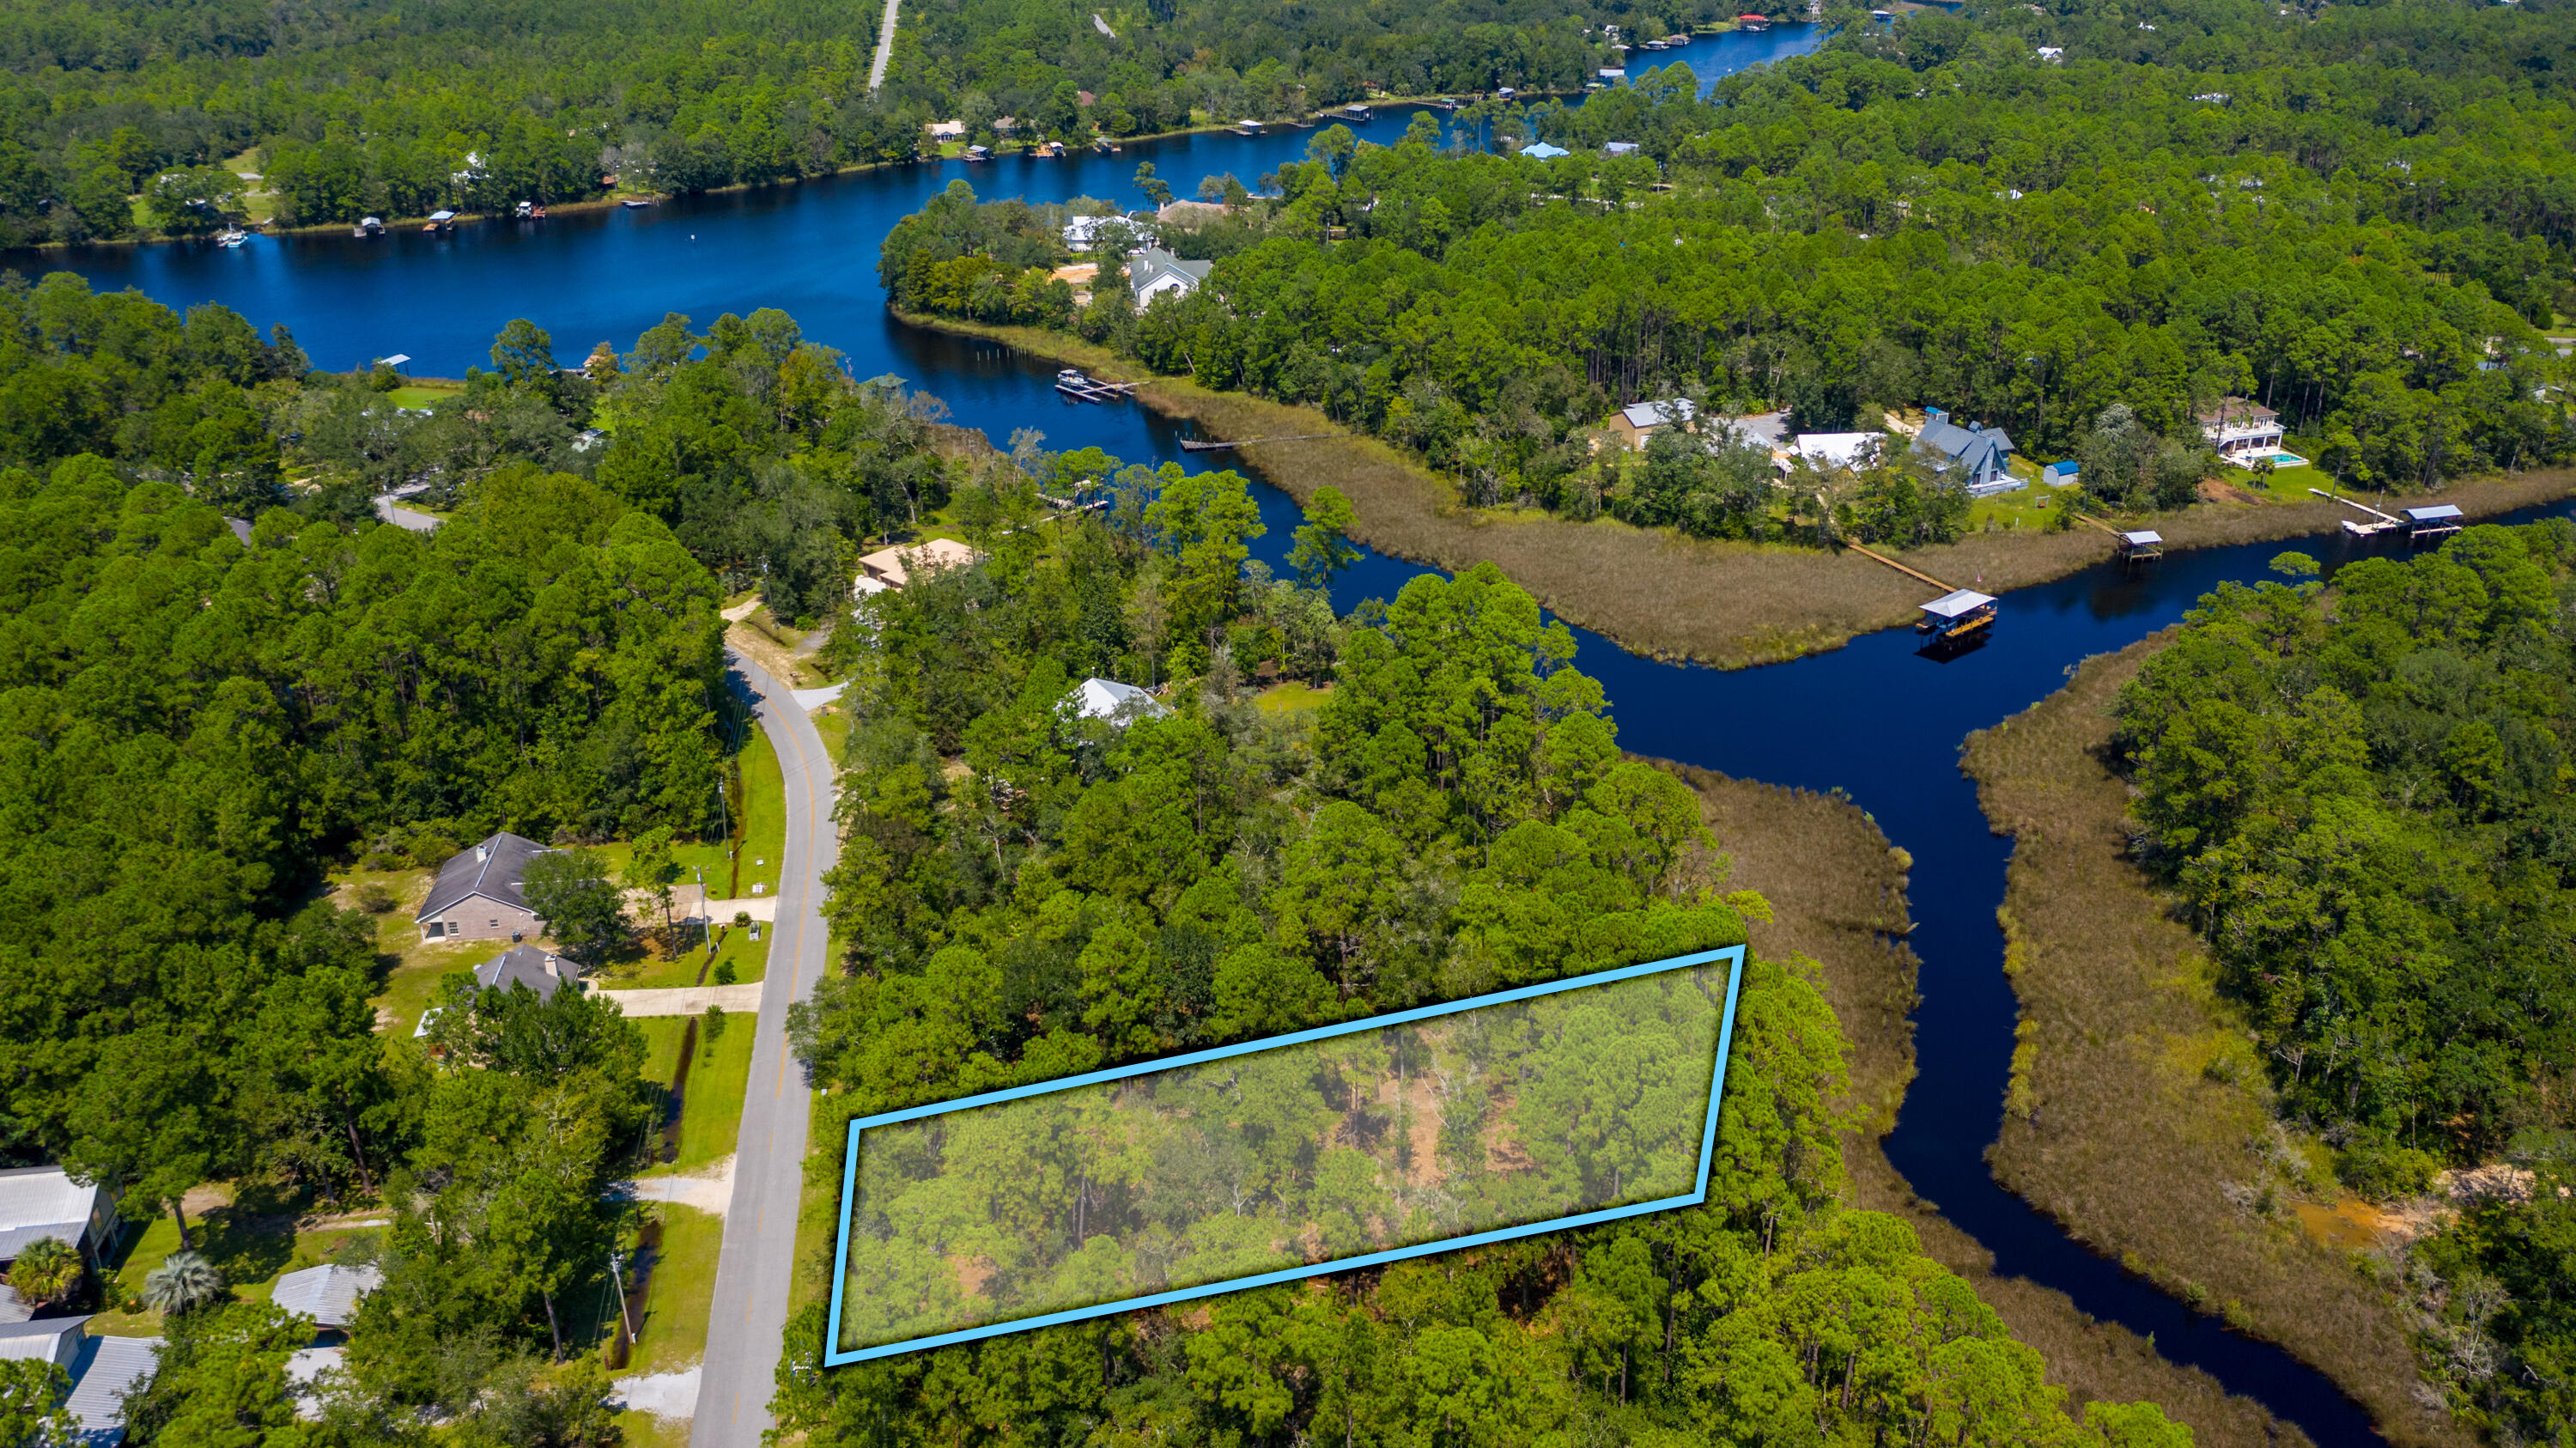 WATERFRONT LOT  Rare waterfront lot on Mallet Bayou with large space to build your dream home! There is a perfect mix of oak trees and pine trees throughout the property. 80+ feet of water frontage.  This lot is also in close proximity to U.S. Hwy 331 and the new county park/Boatramp.  Call to schedule your private showing.